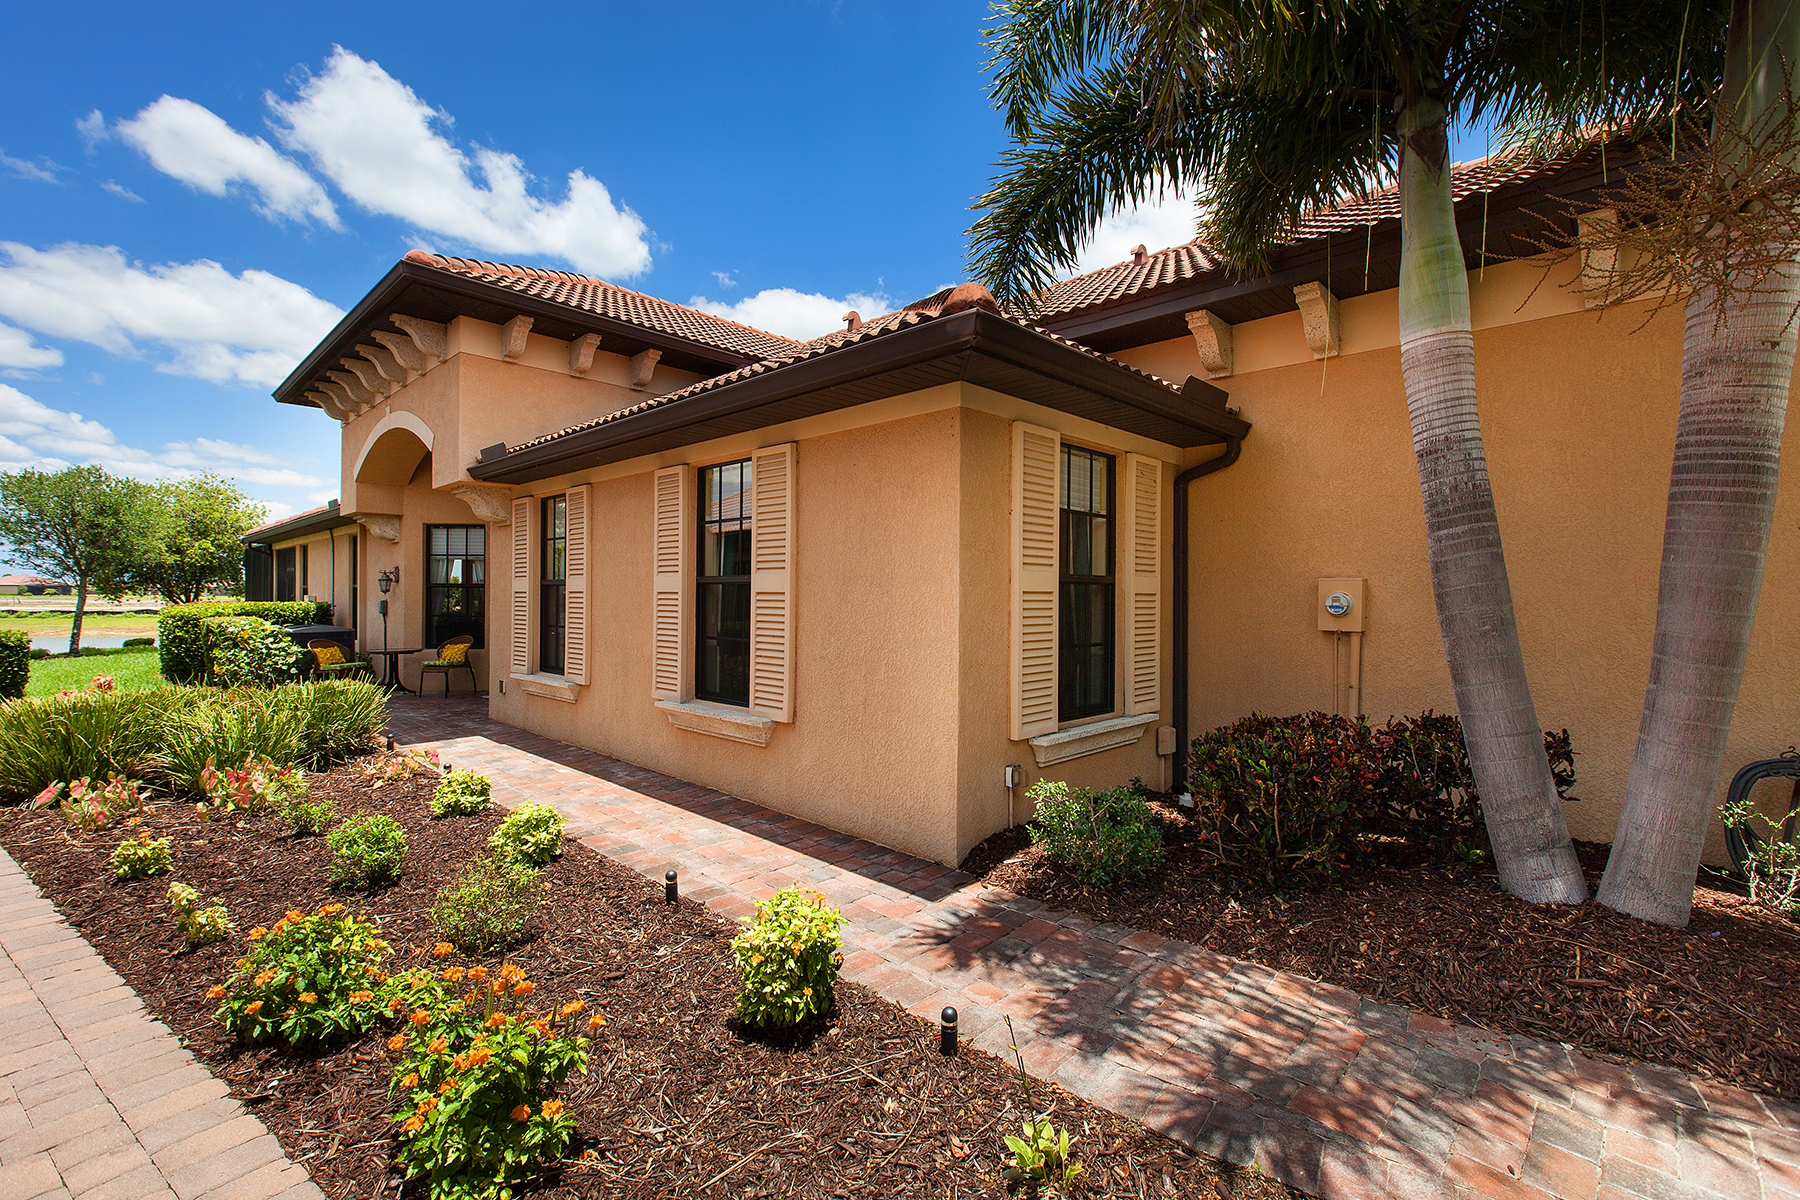 Townhouse for Sale at GRAN PARADISO 20117 Tesoro Dr Venice, Florida 34293 United States